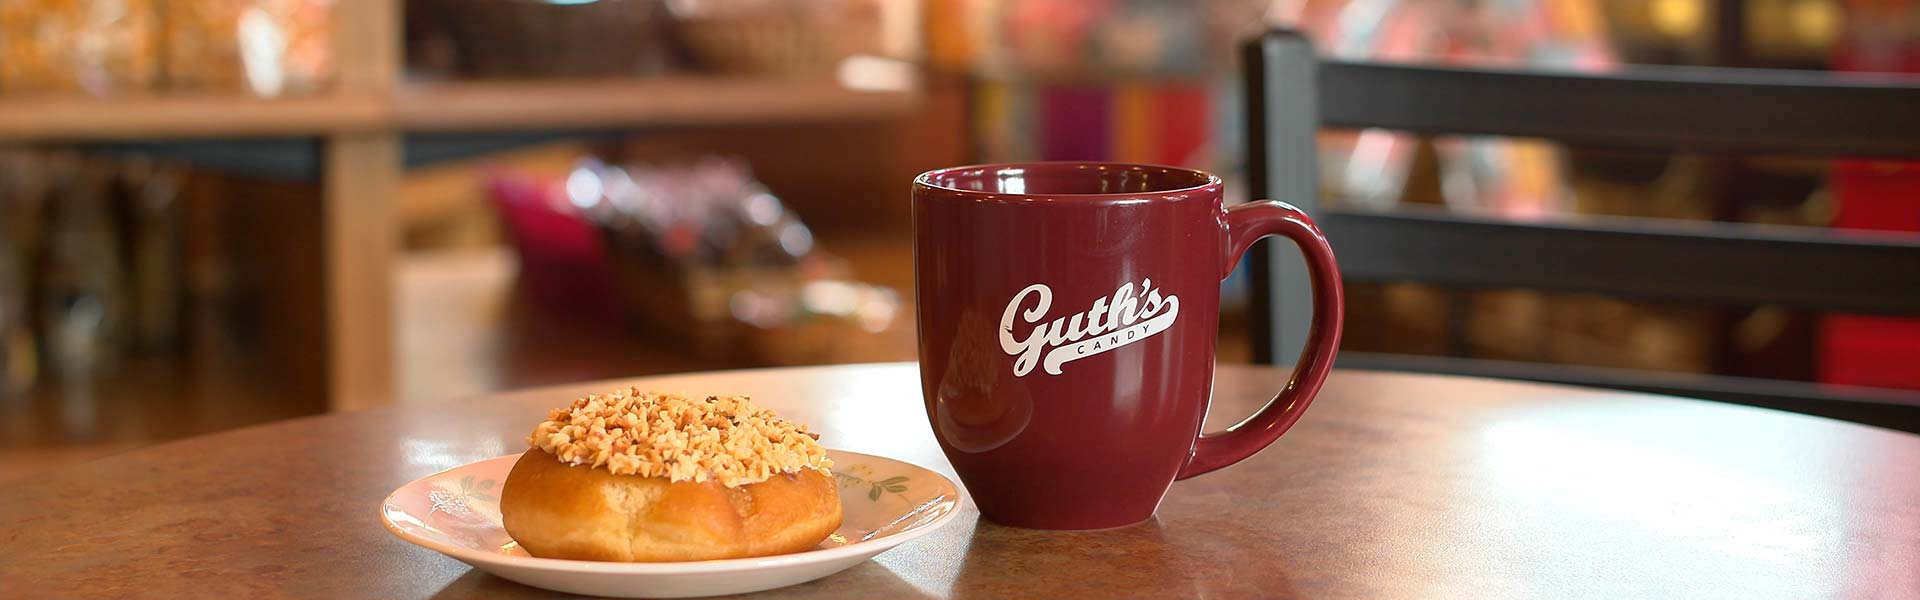 Fresh Brewed Coffee Guth's